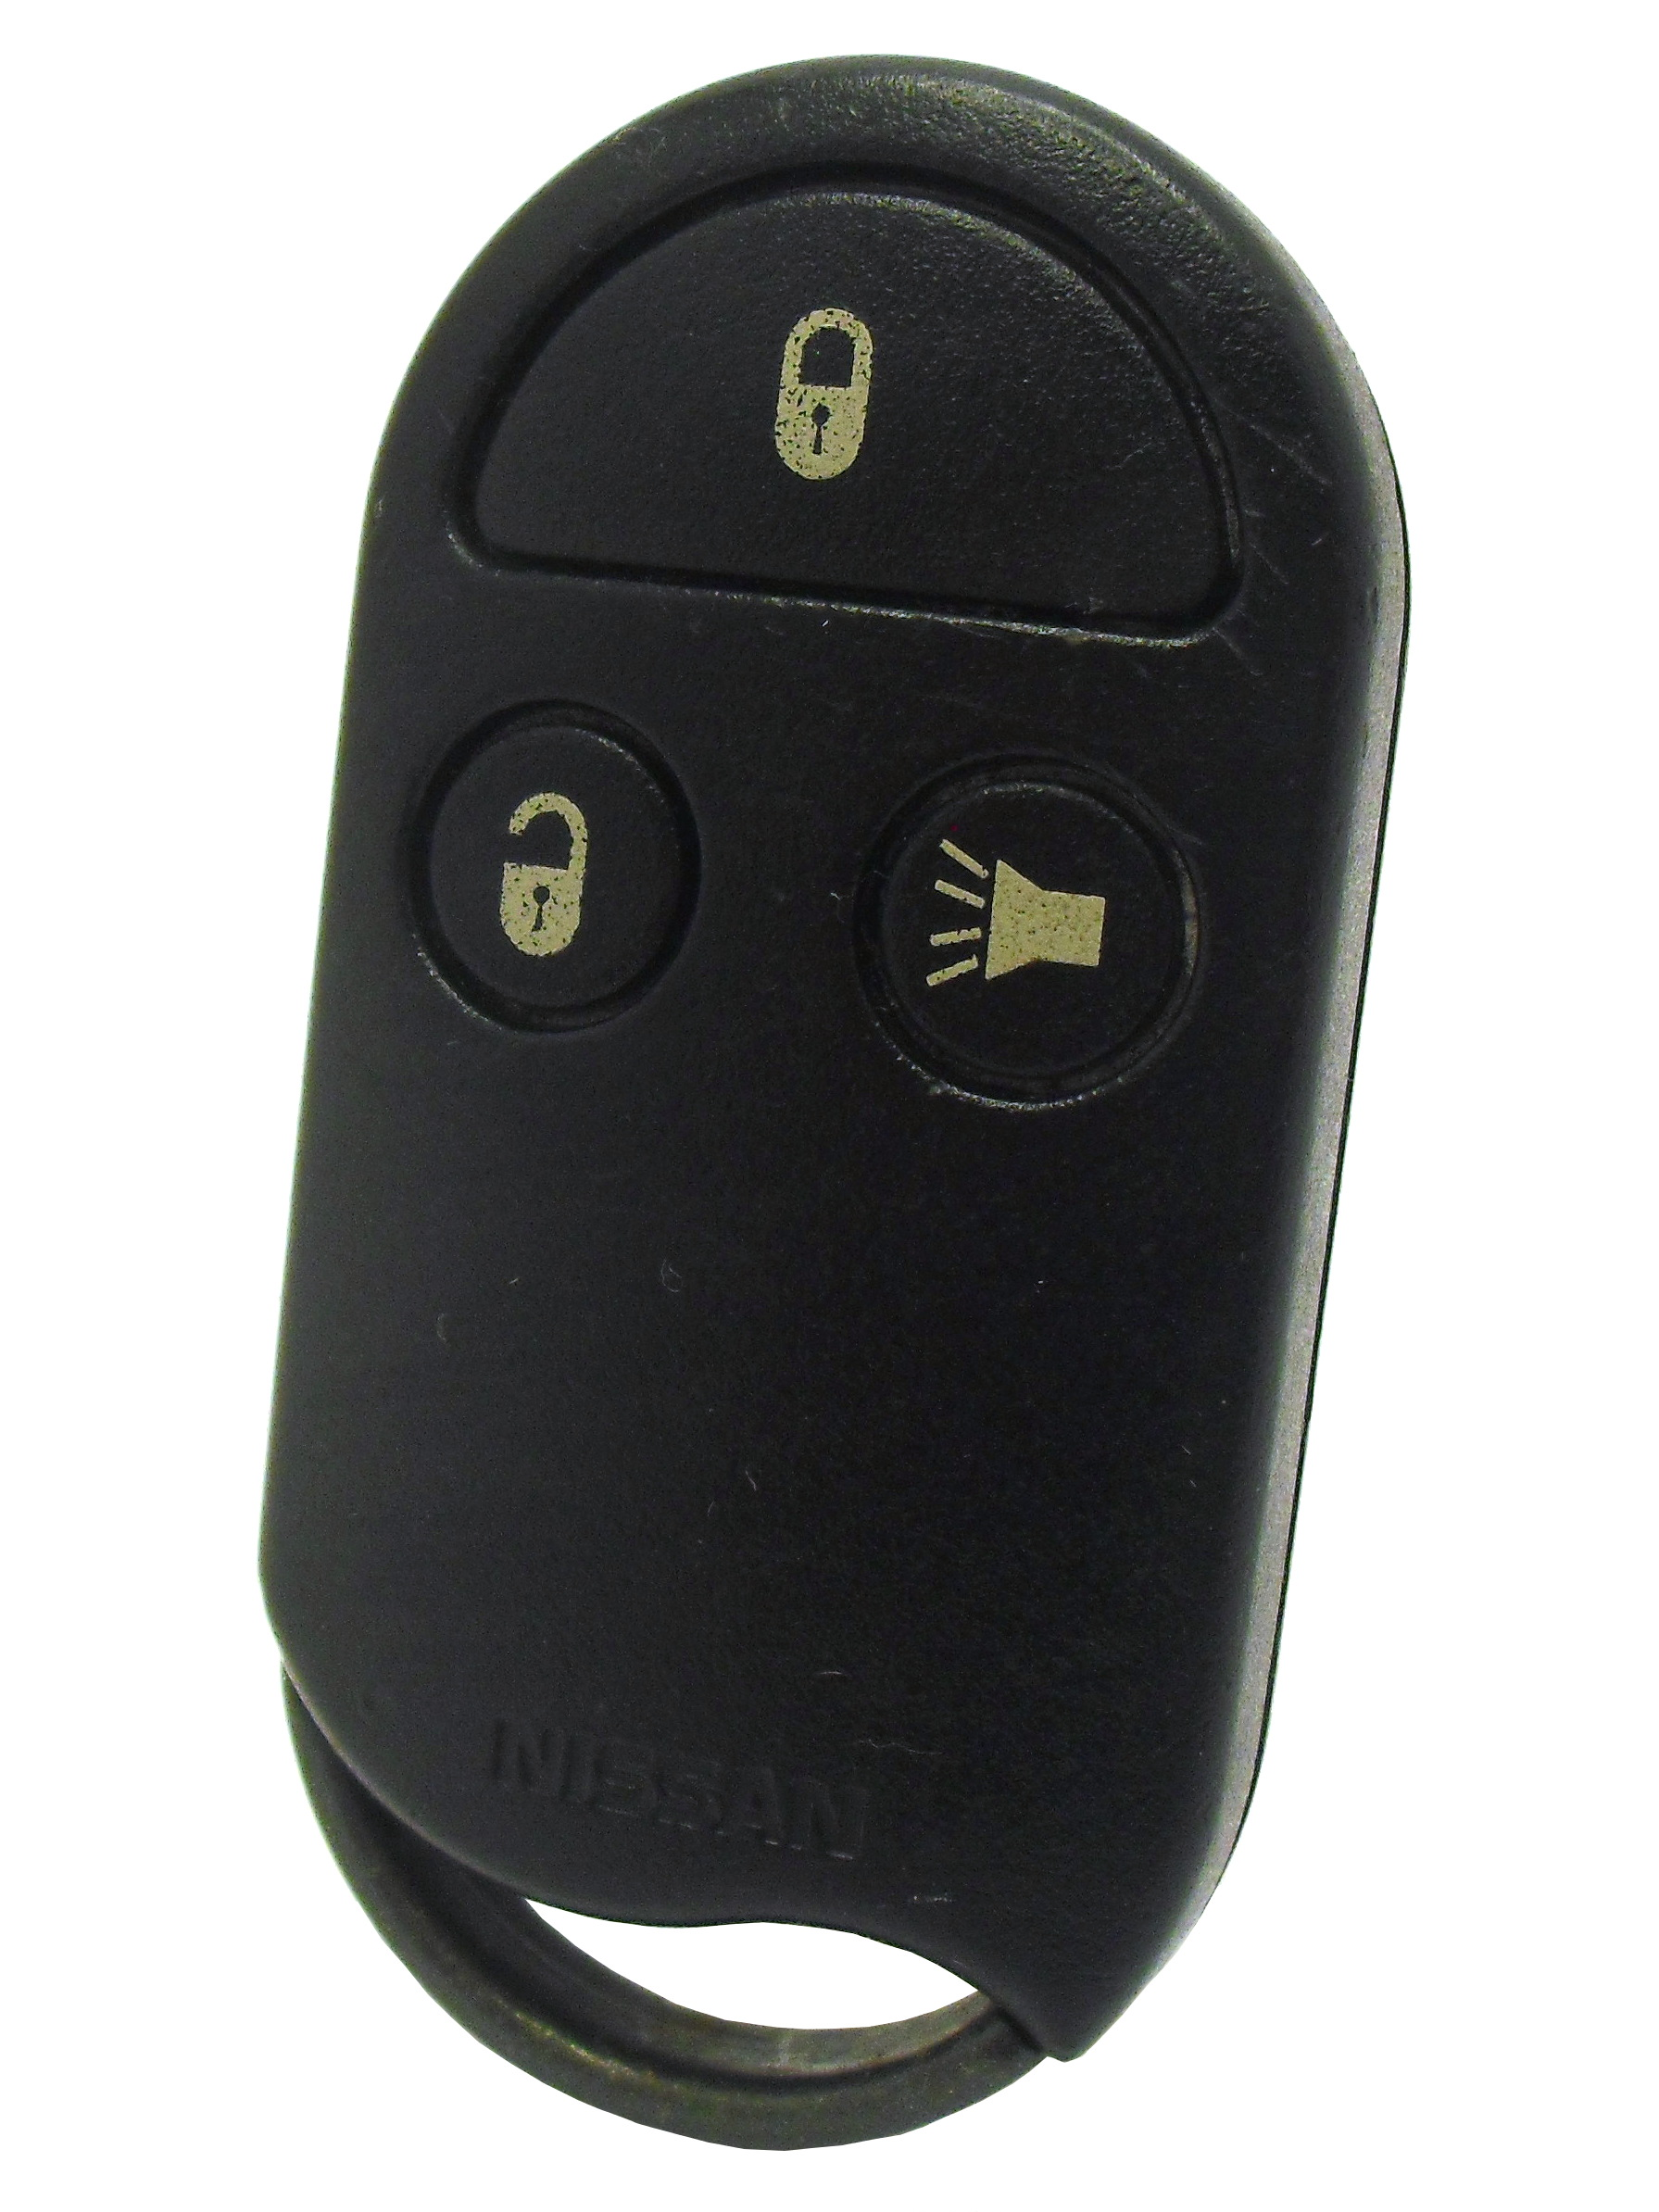 Nissan Keyless Entry Remote - 3 Button